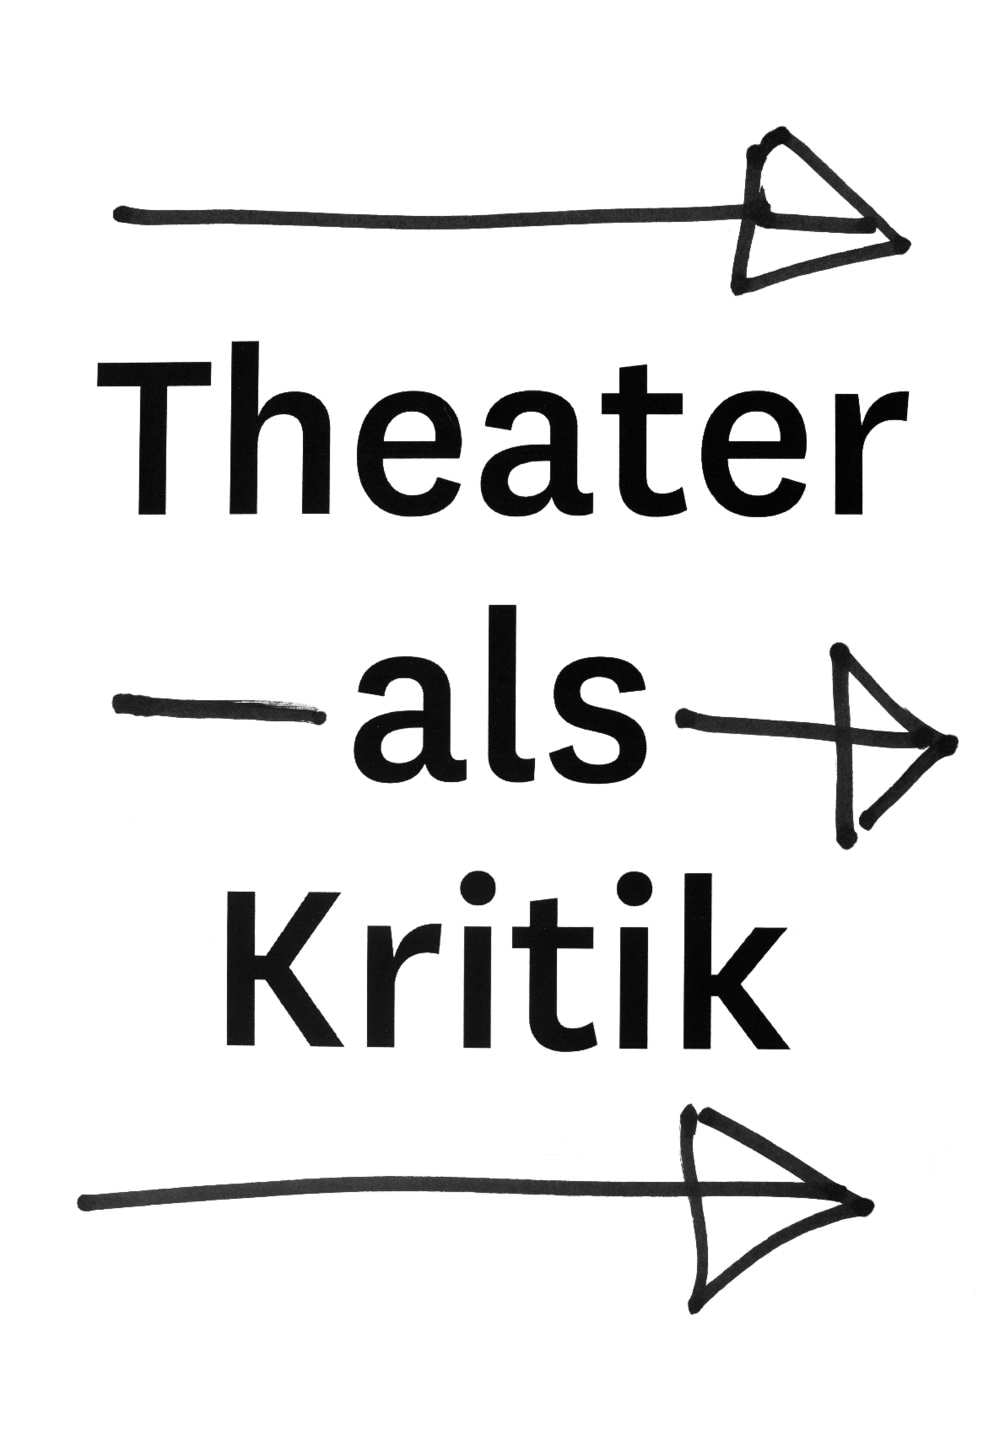 theater-as-critique-slip-27-1005x1435px